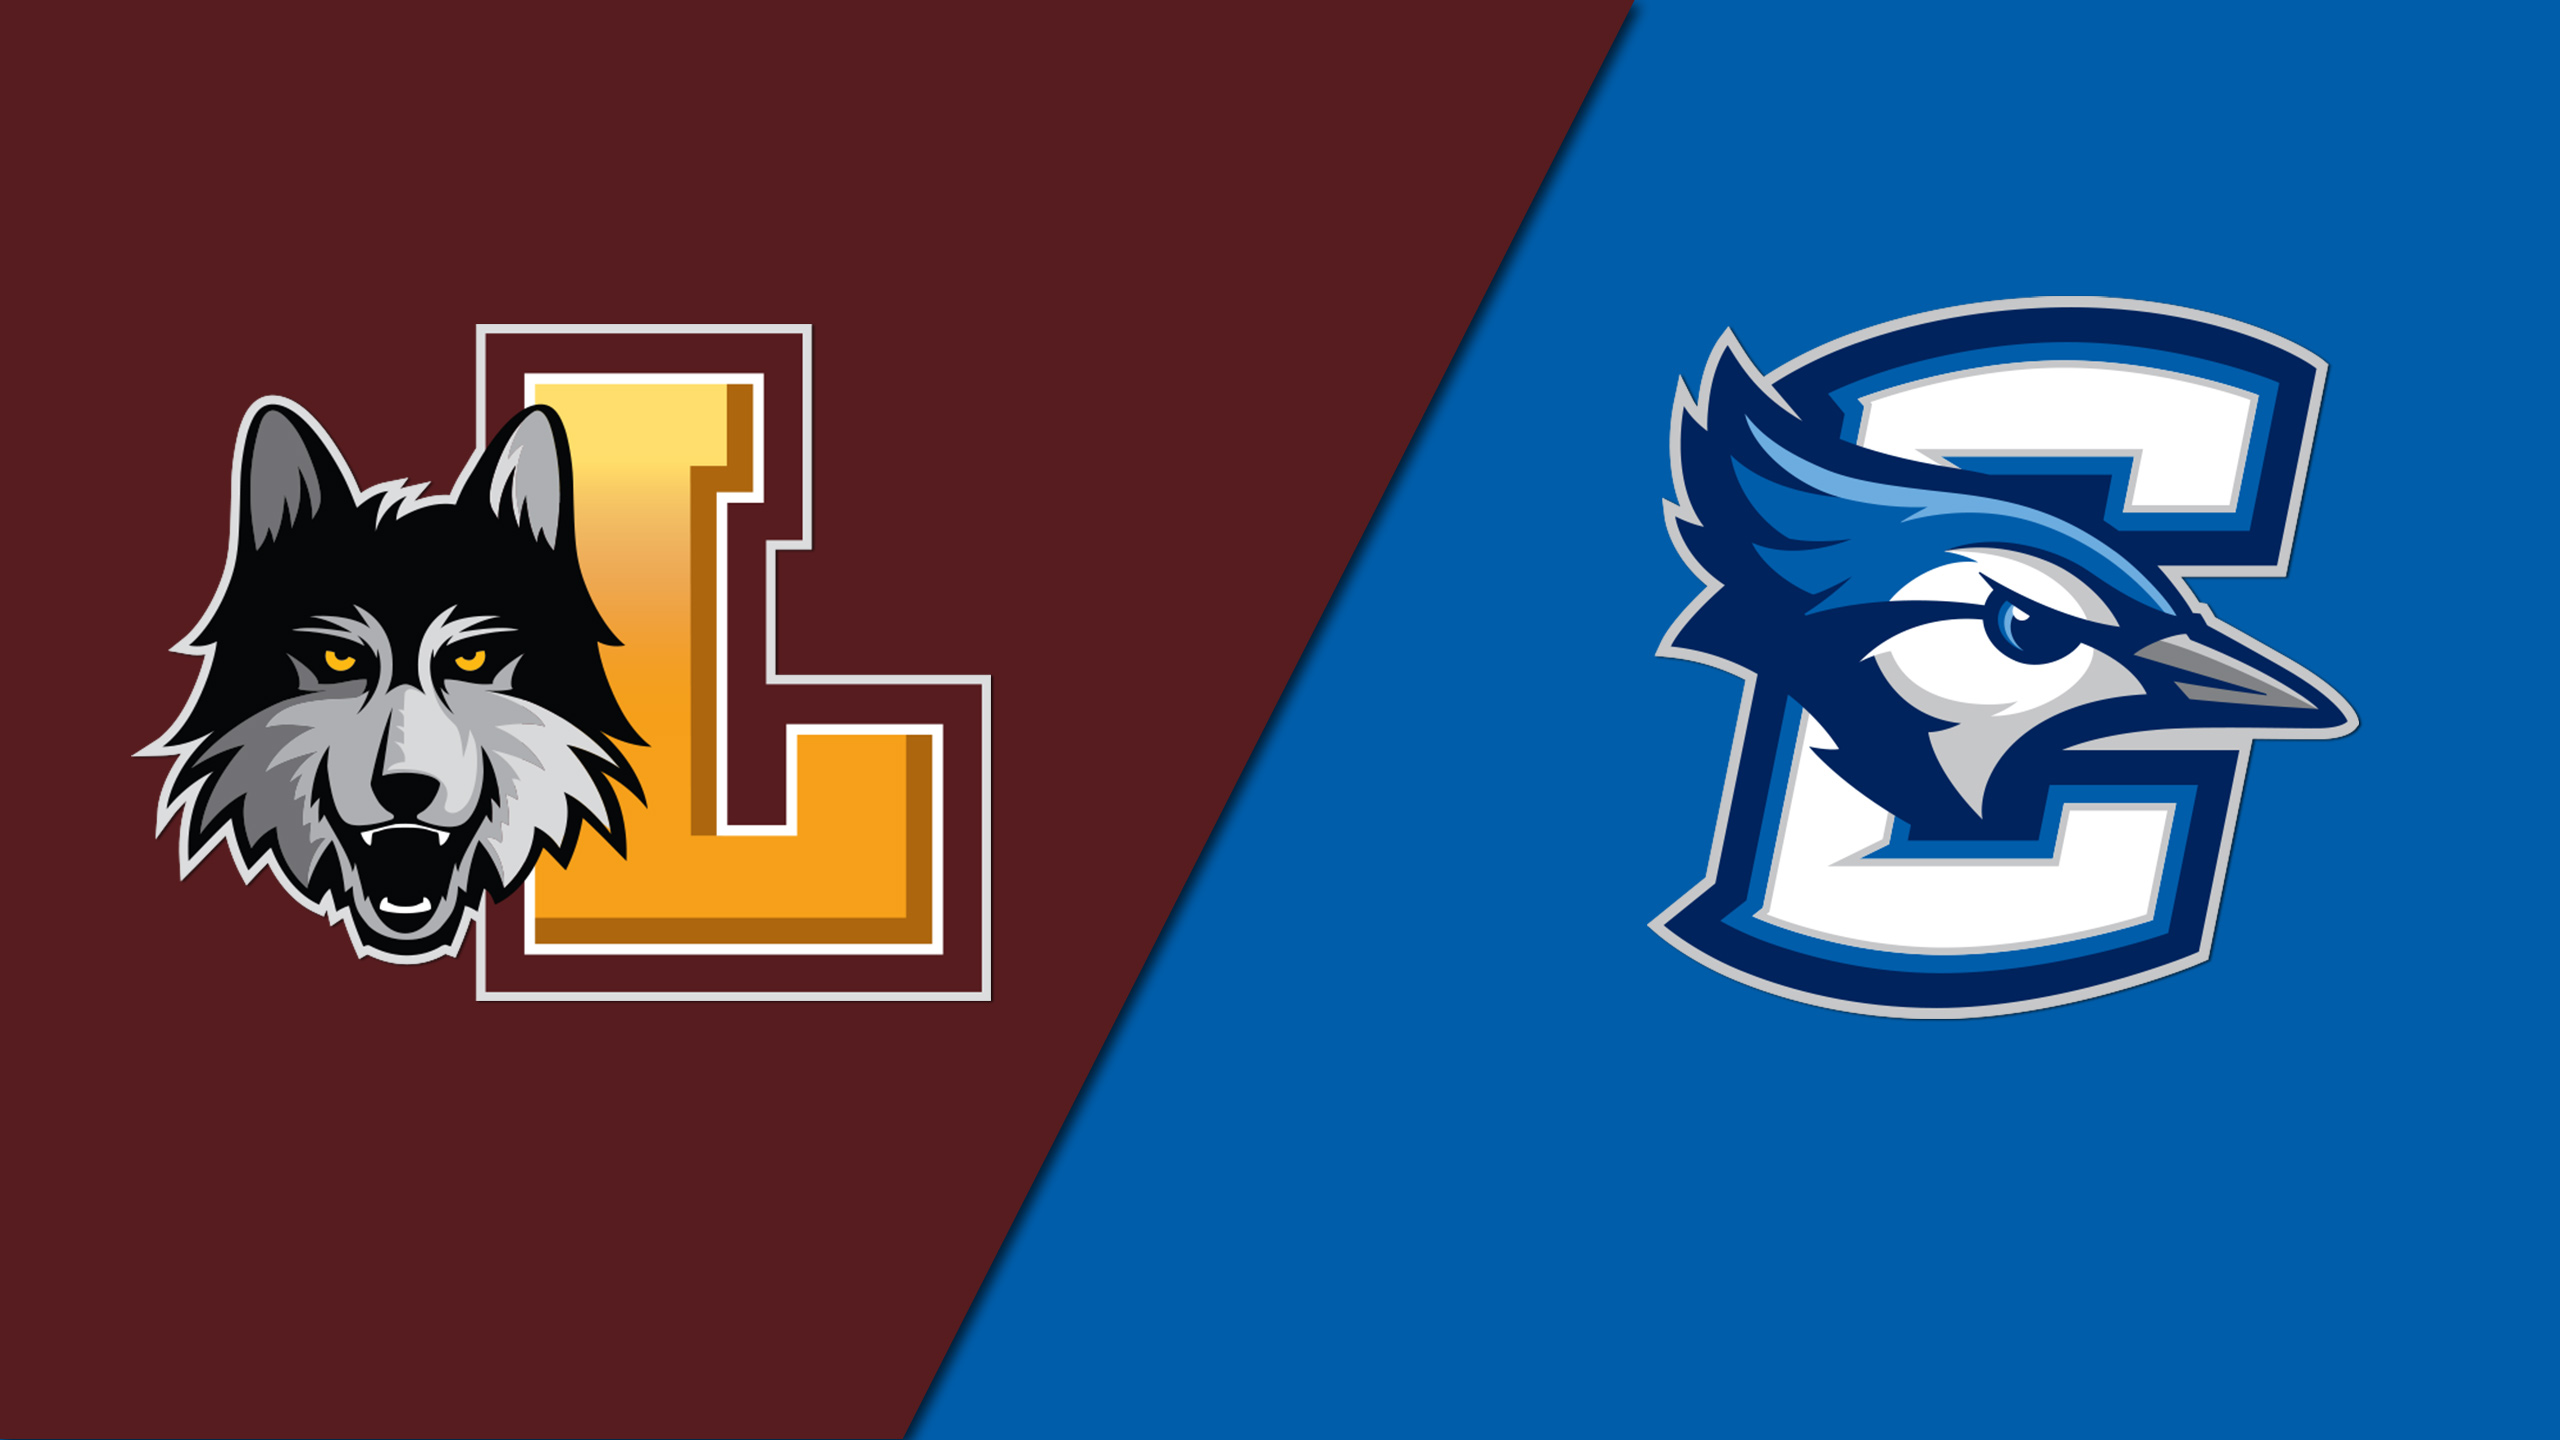 #7 Loyola Chicago vs. #2 Creighton (First Round) (re-air)